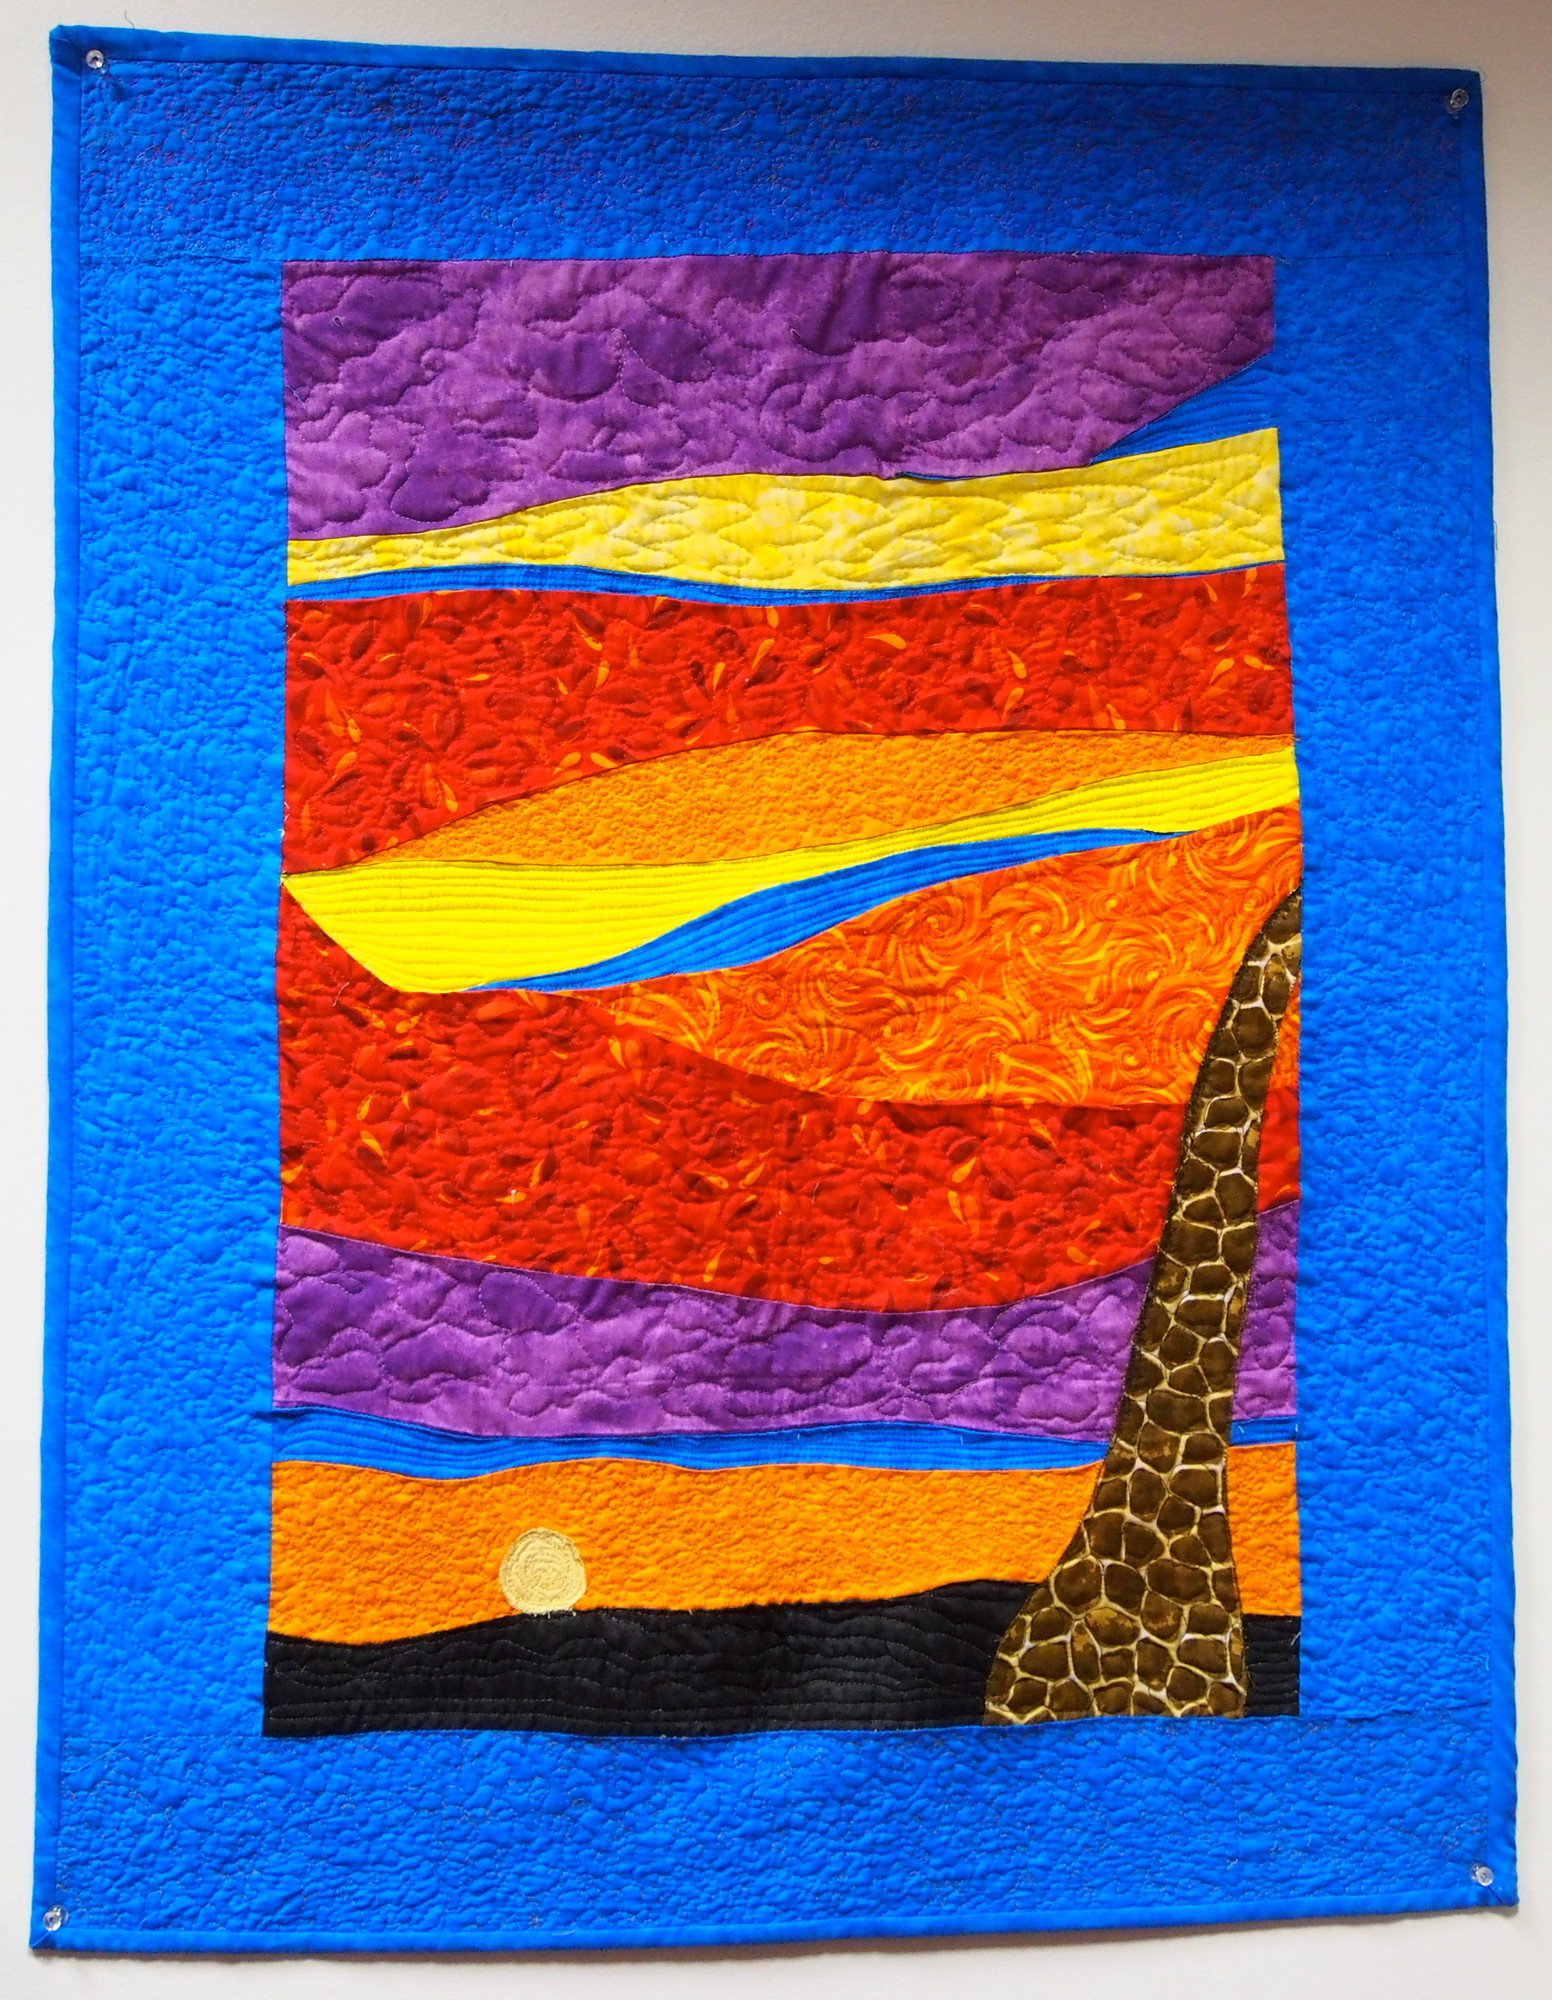 This quilt, Sunset on the Serengeti, was inspired by a conversation with the artist's daughter. The discussion was about clashing colors and how hues that don't complement one another in fashion often do so in nature.